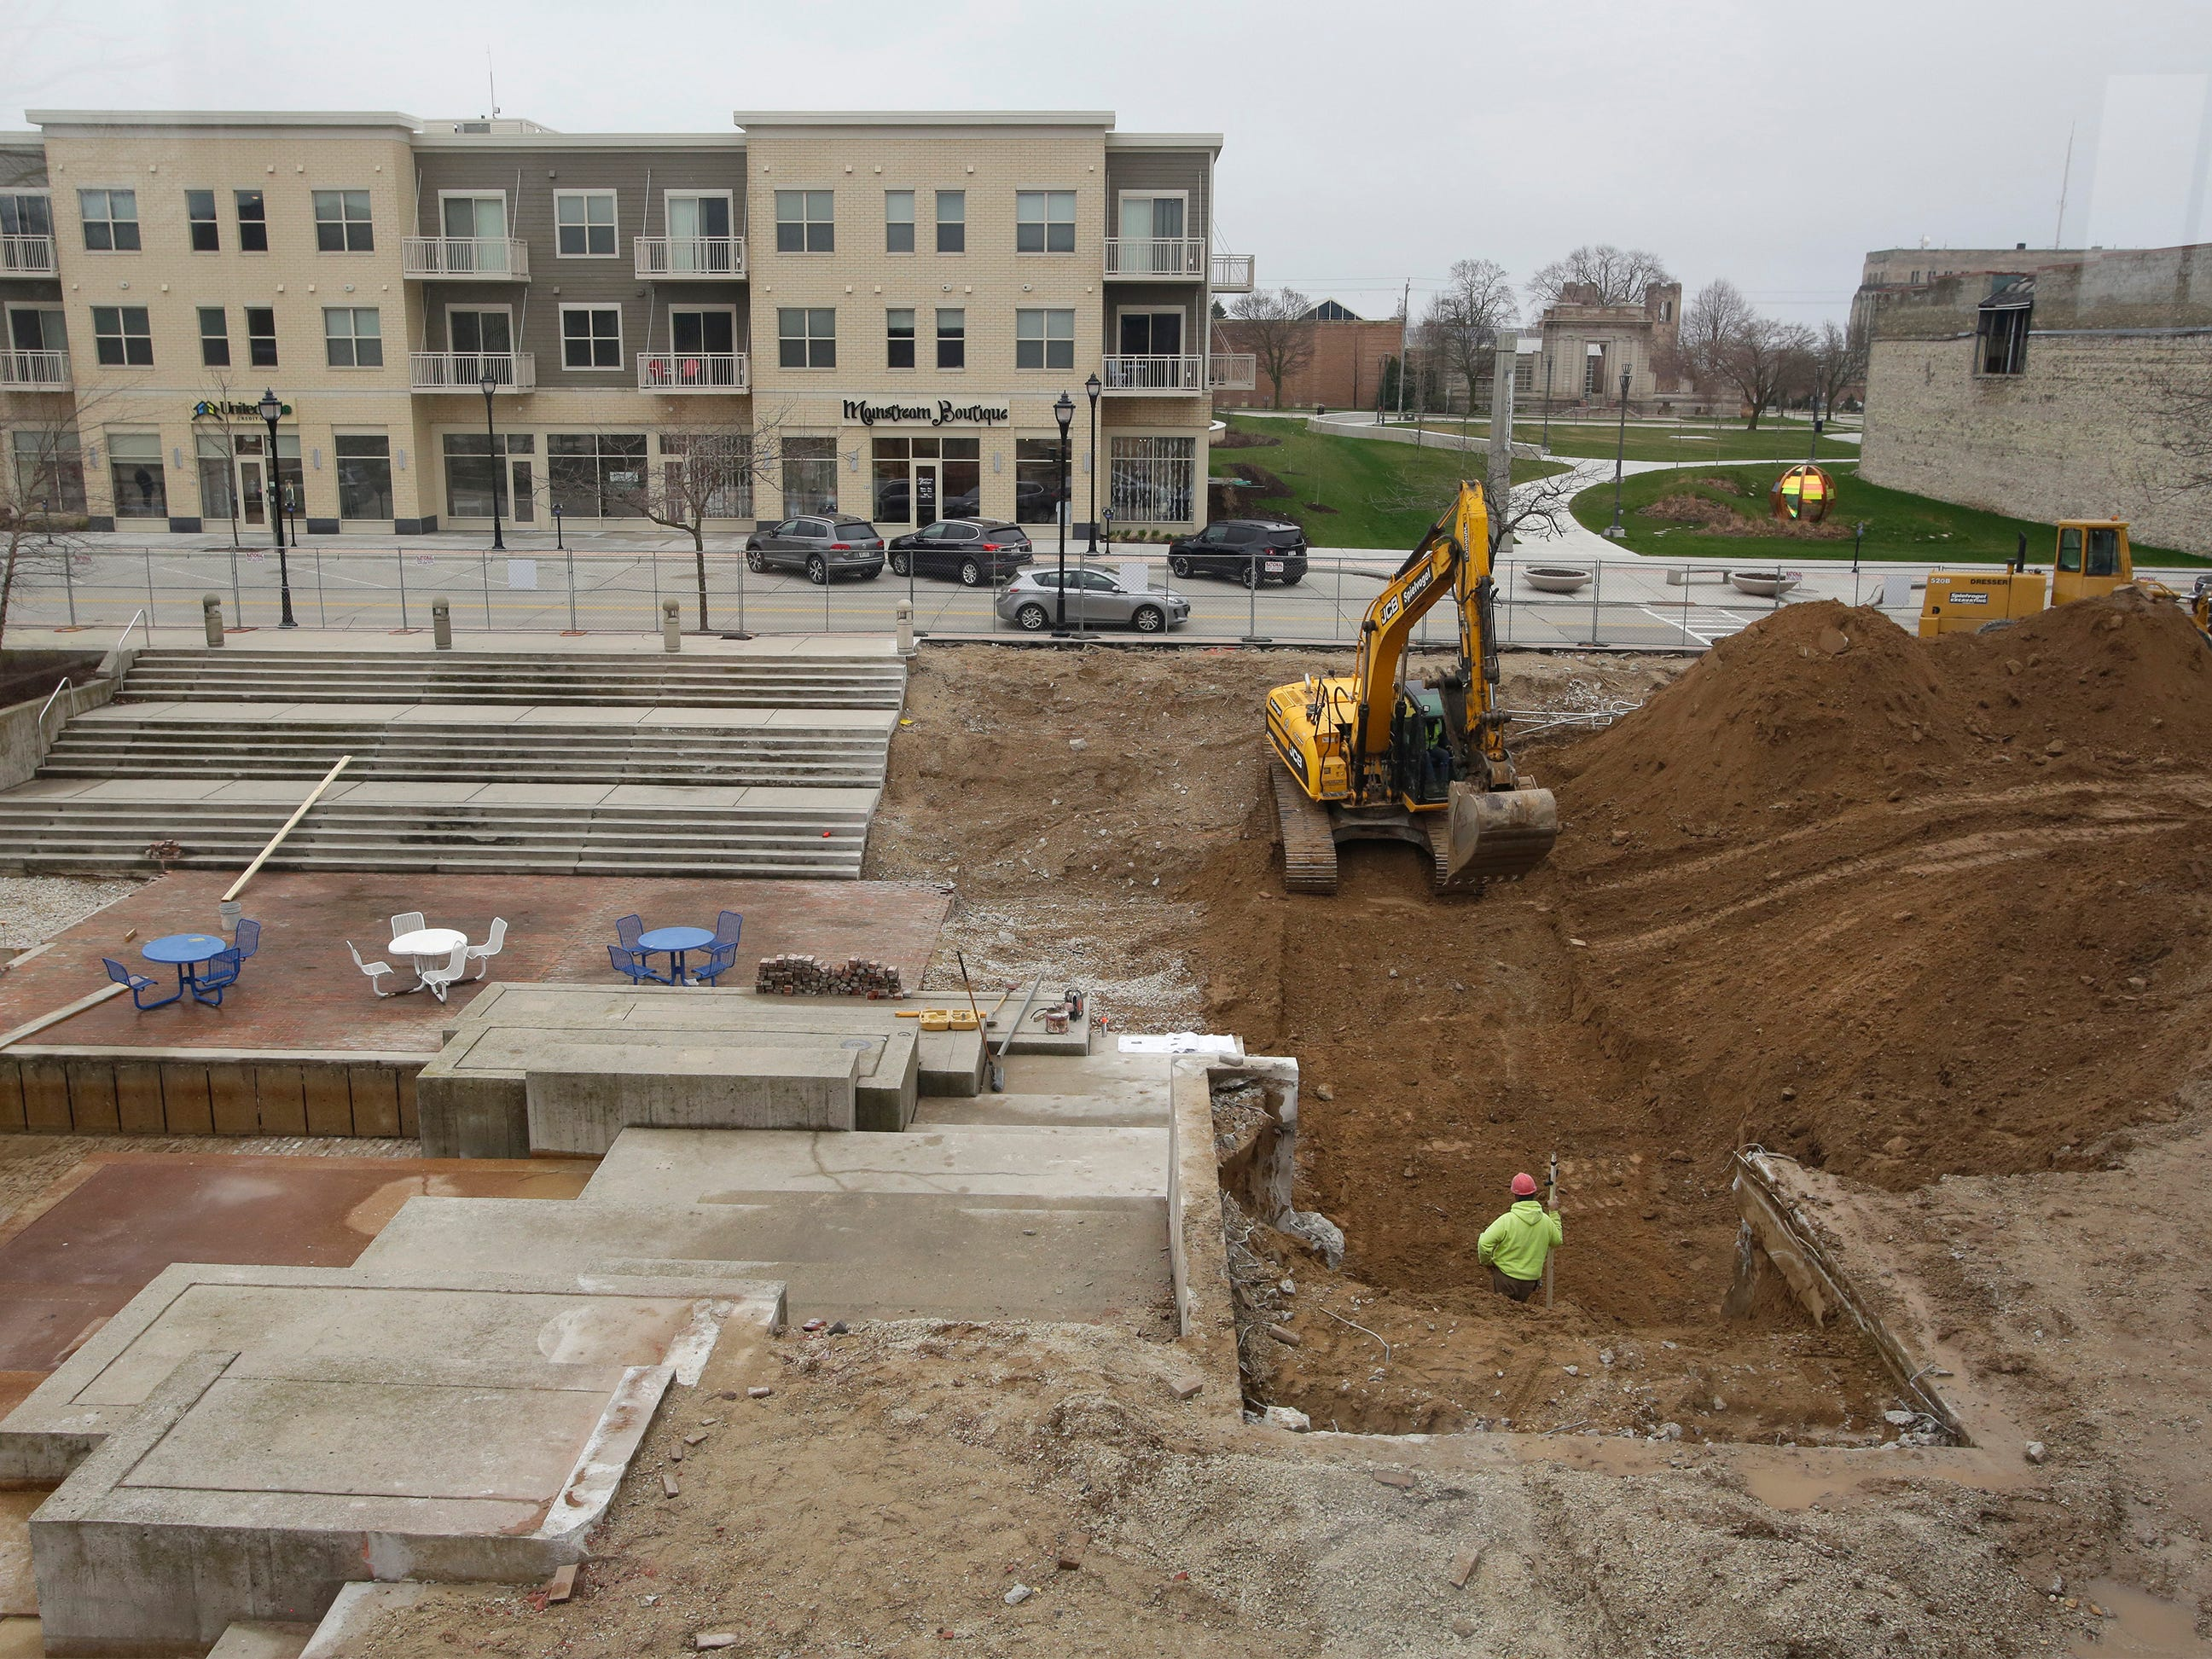 A view from inside Mead Public Library work being done on the Mead Public Library Plaza, Wednesday, May 1, 2019, in Sheboygan, Wis.